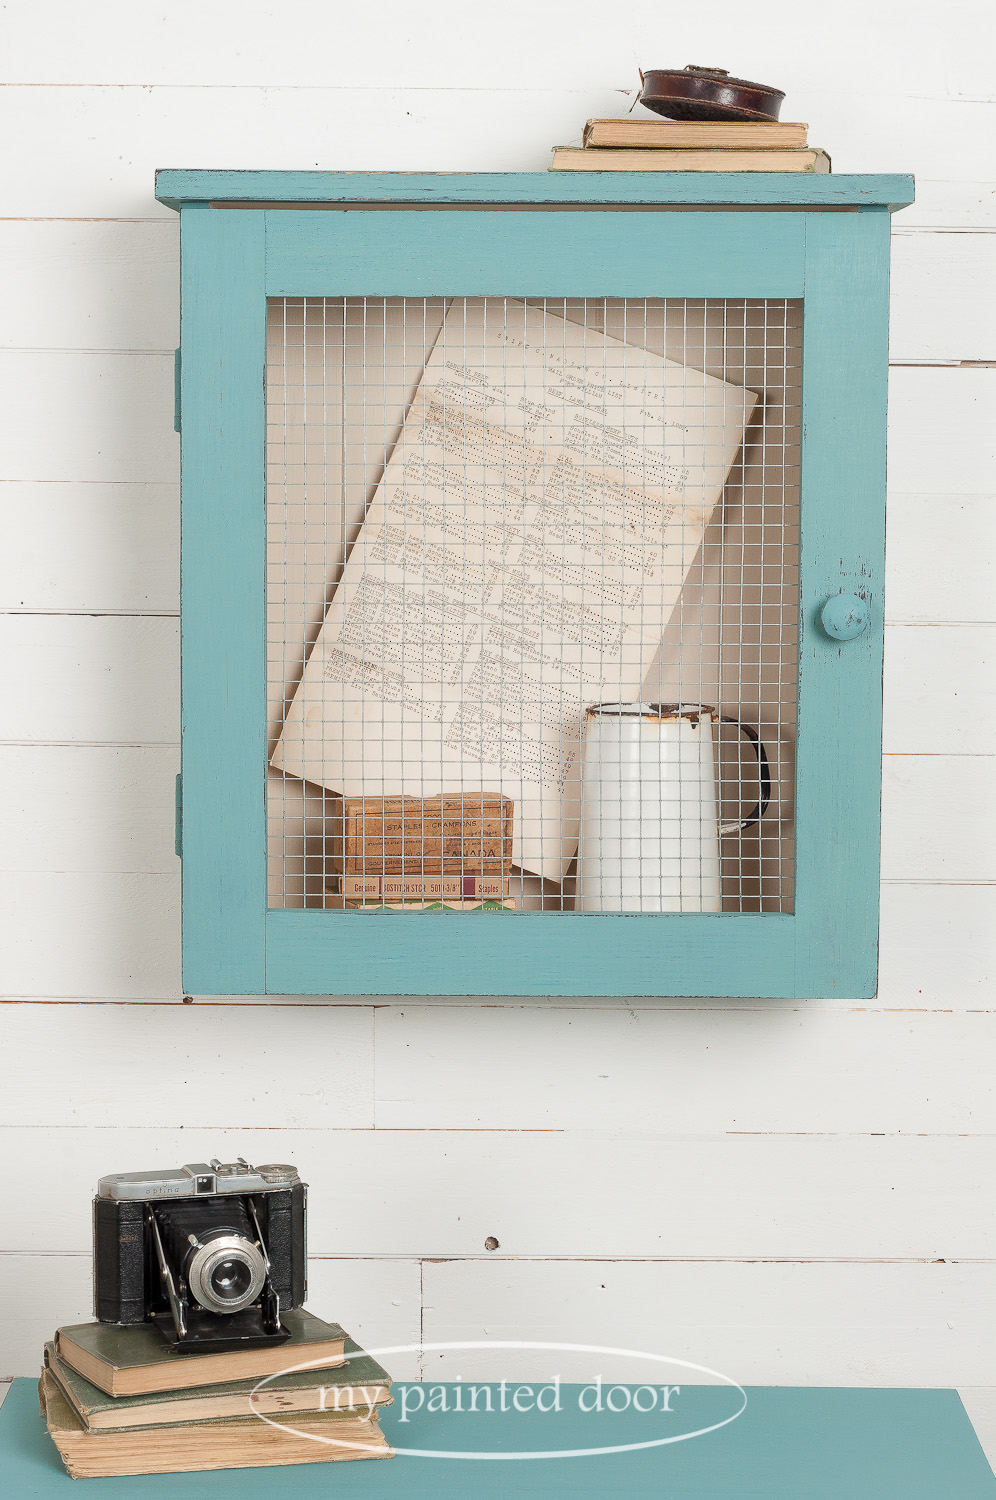 Learn how to paint furniture - Curiosity cabinet painted with Homestead House Milk Paint in the colour Niagara Green.